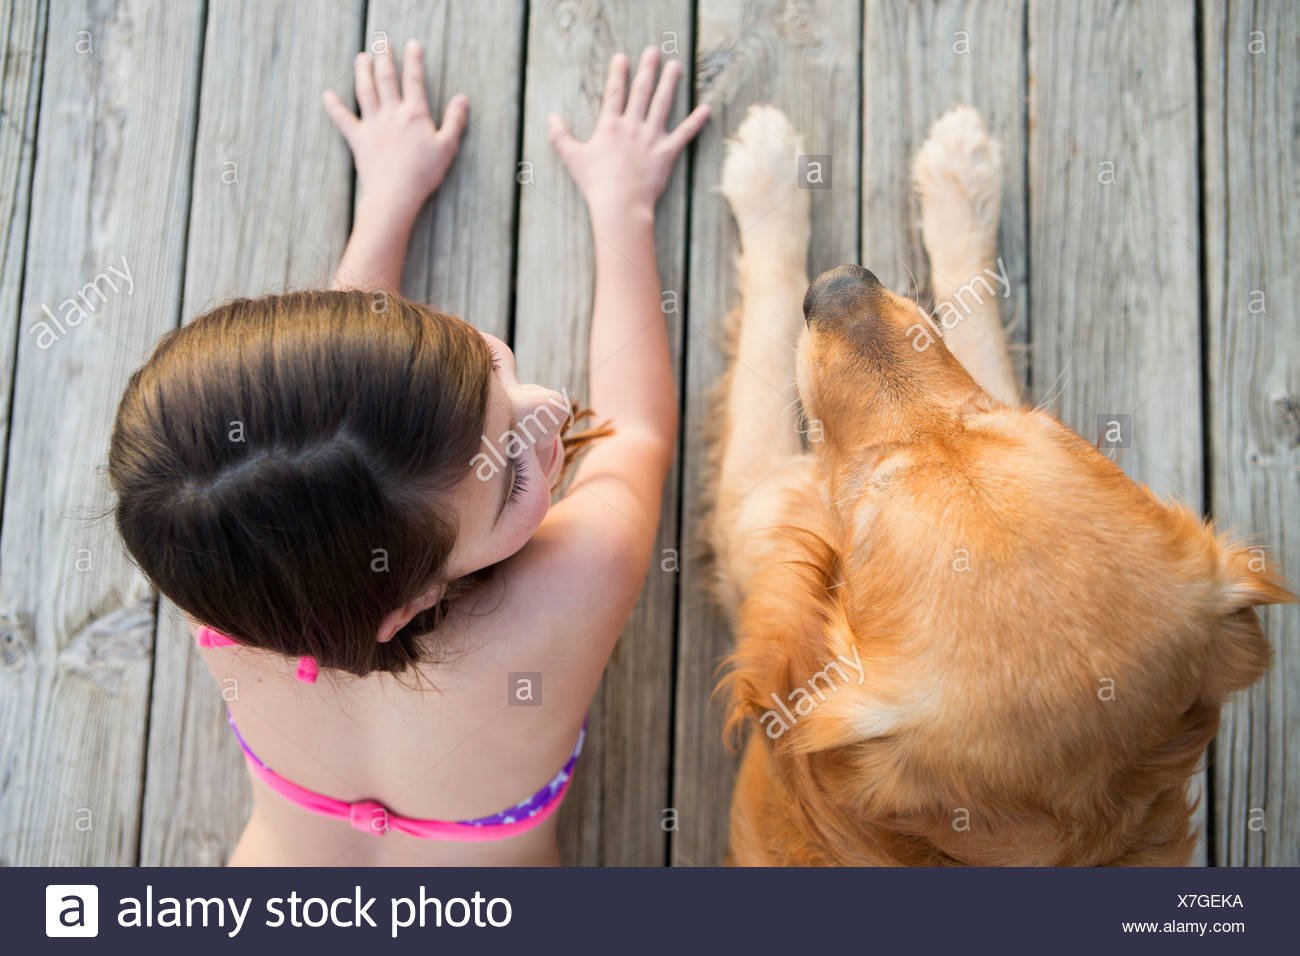 A young girl and a golden retriever dog side by side on a jetty. - Stock Image